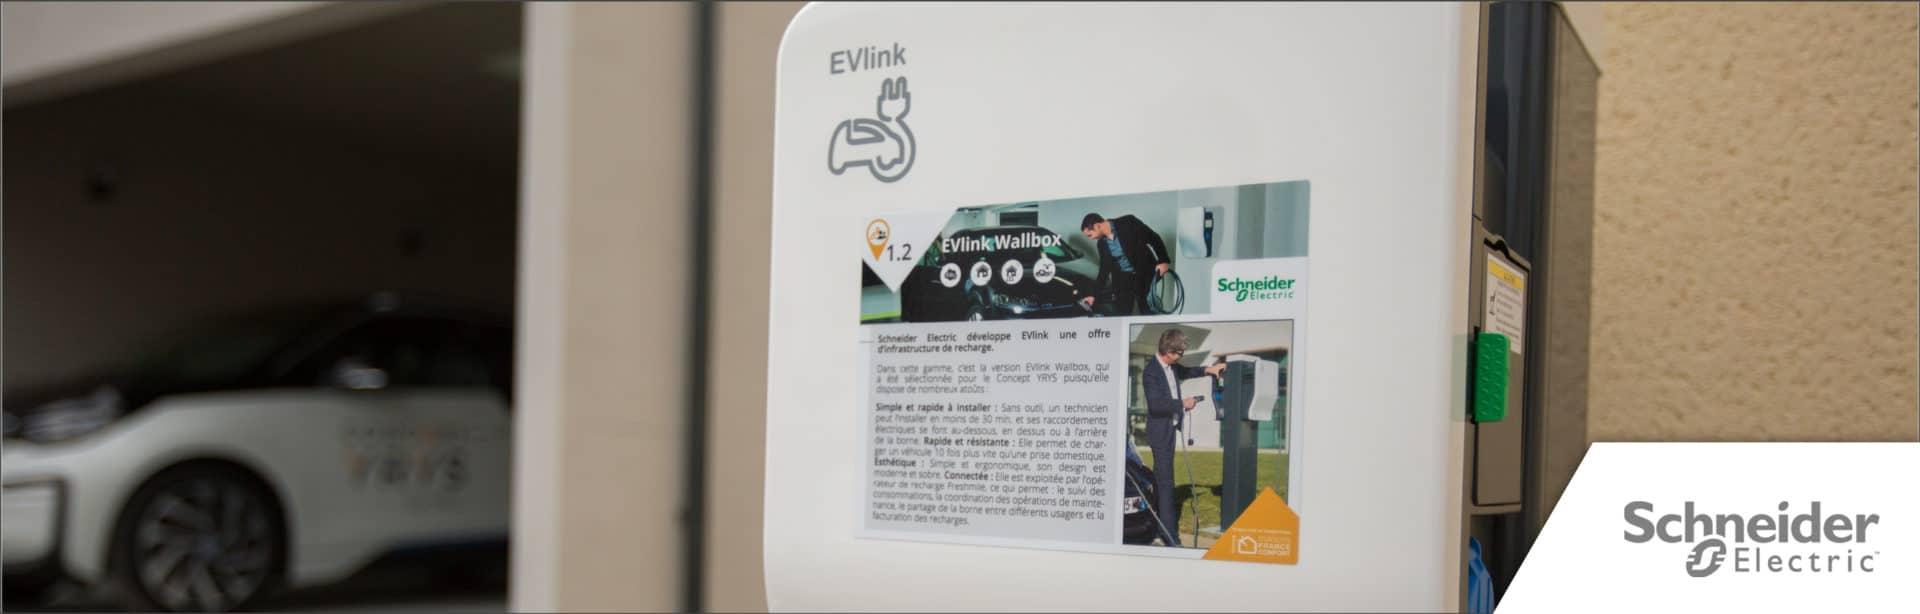 EVlink Wallbox - Schneider Electric